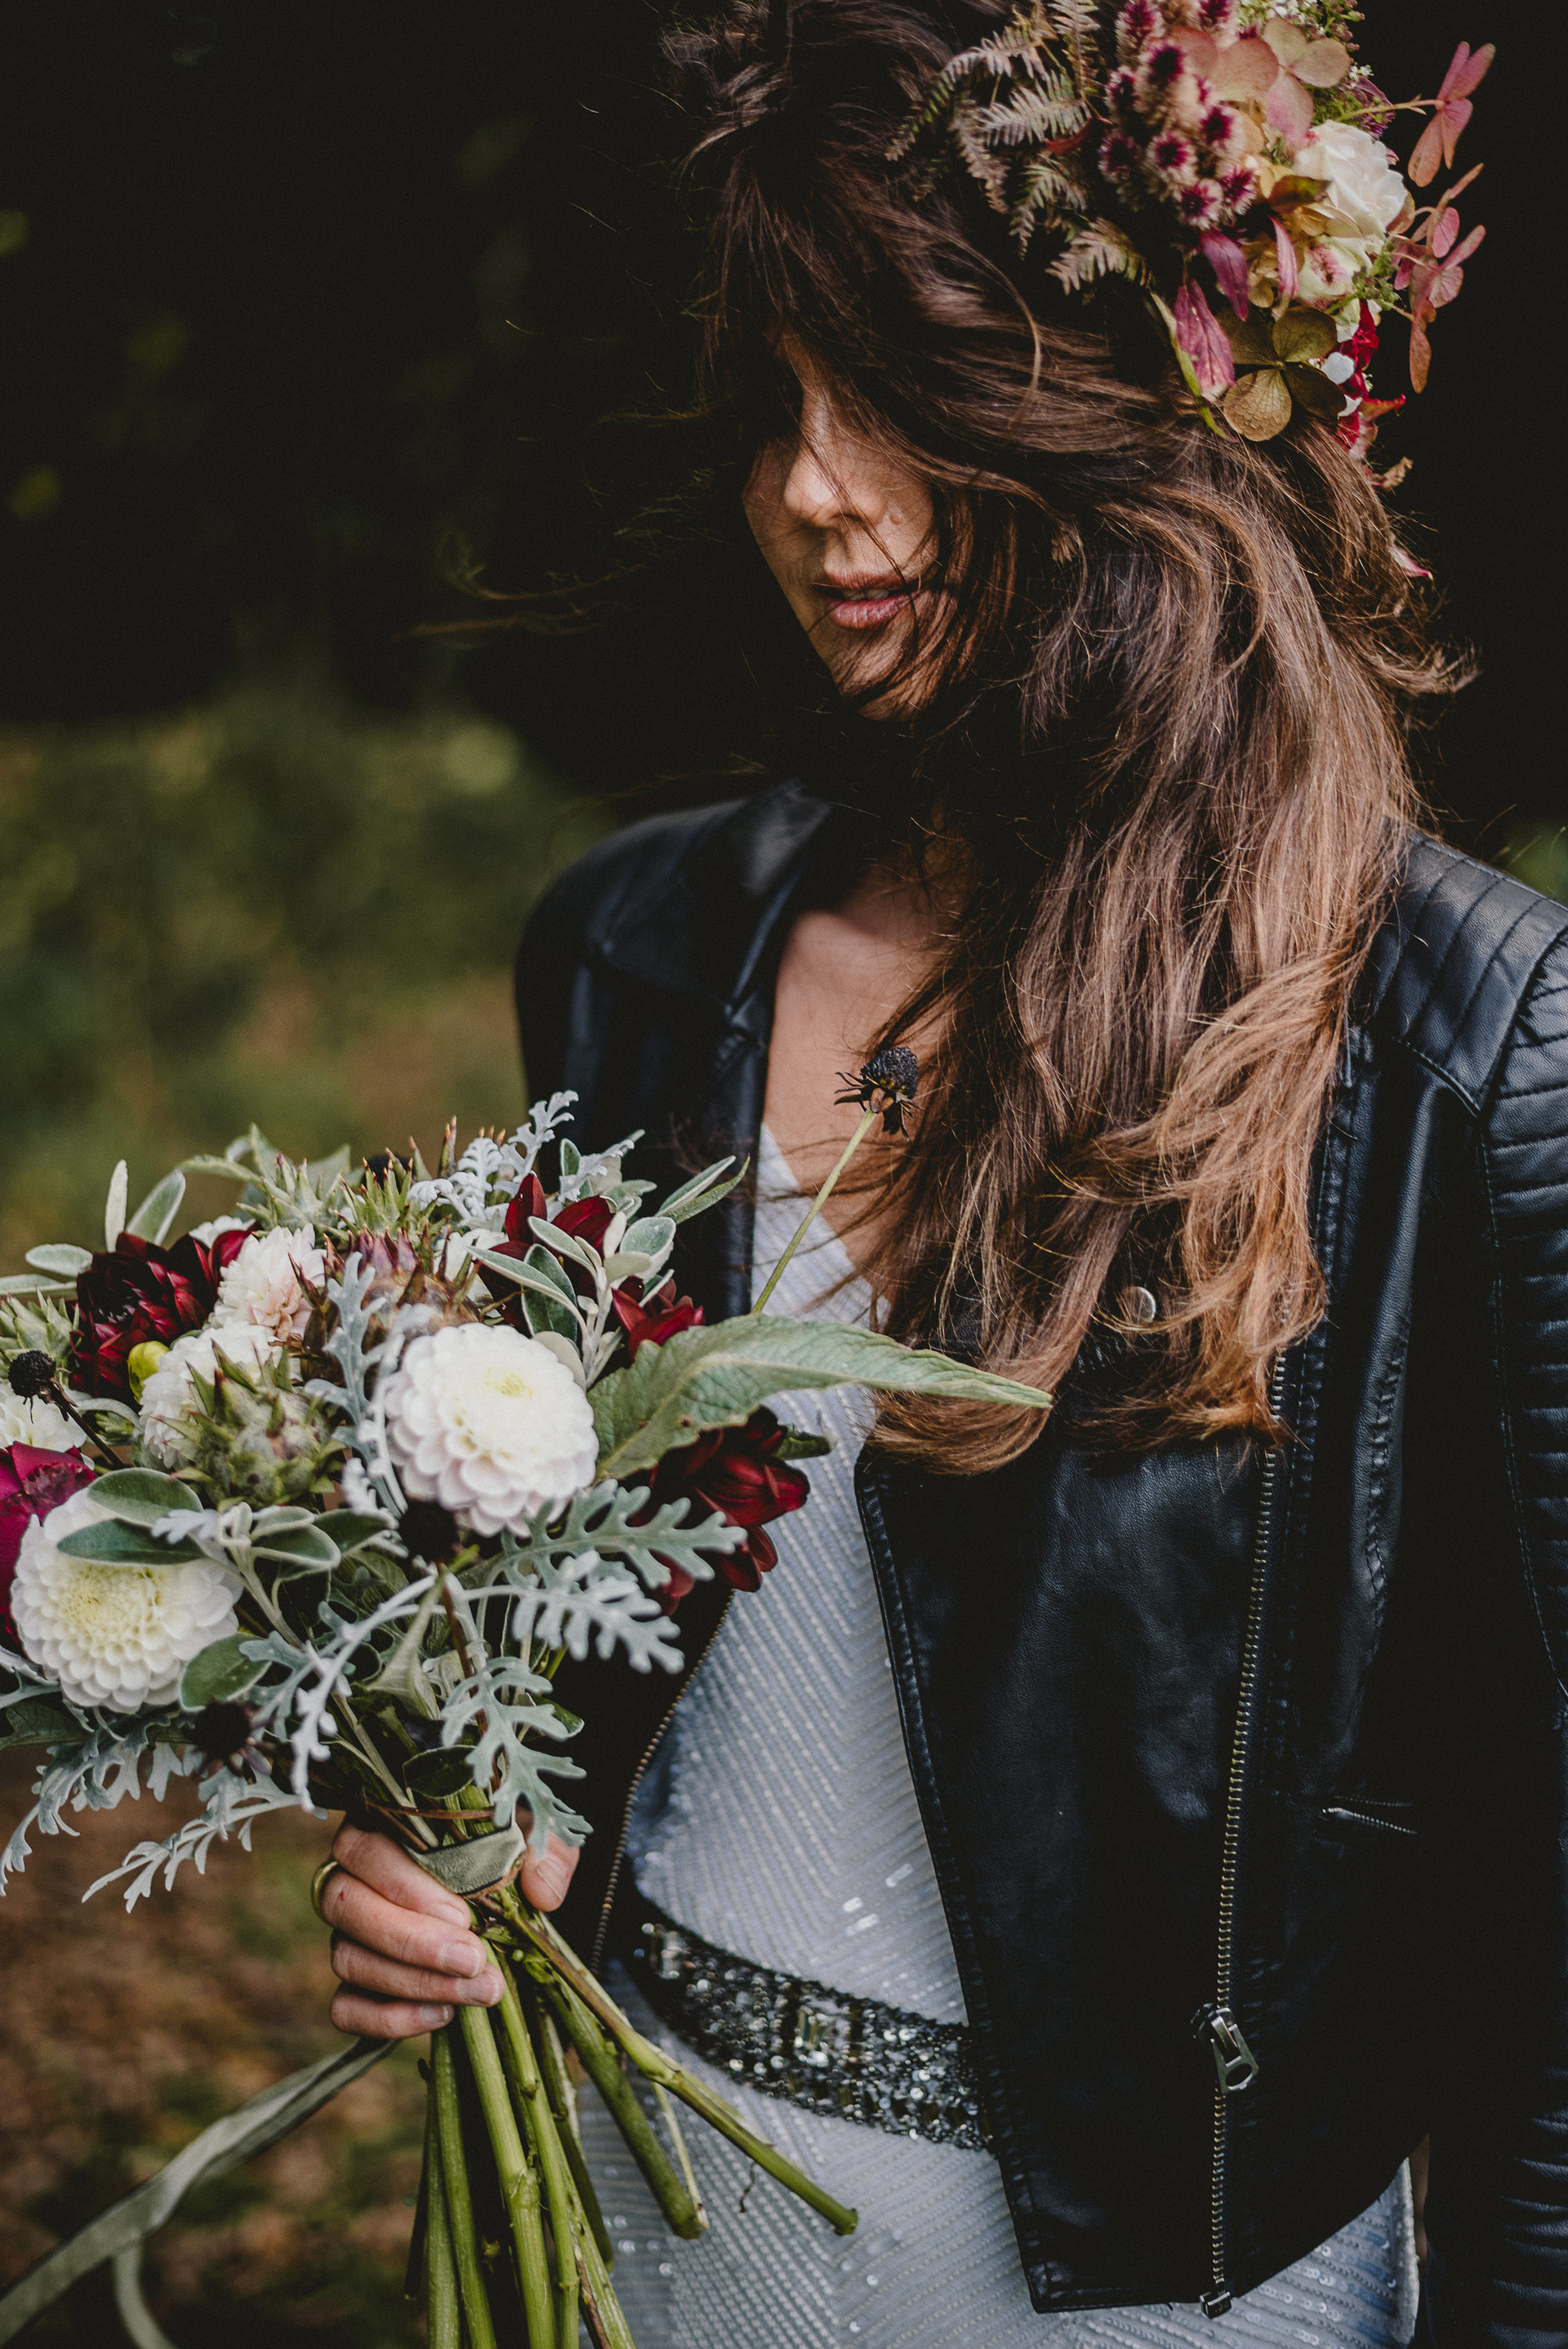 Bride holding a bouquet. She is wearing a beaded wedding dress and black leather jacket. She has a floral crown in pinks.